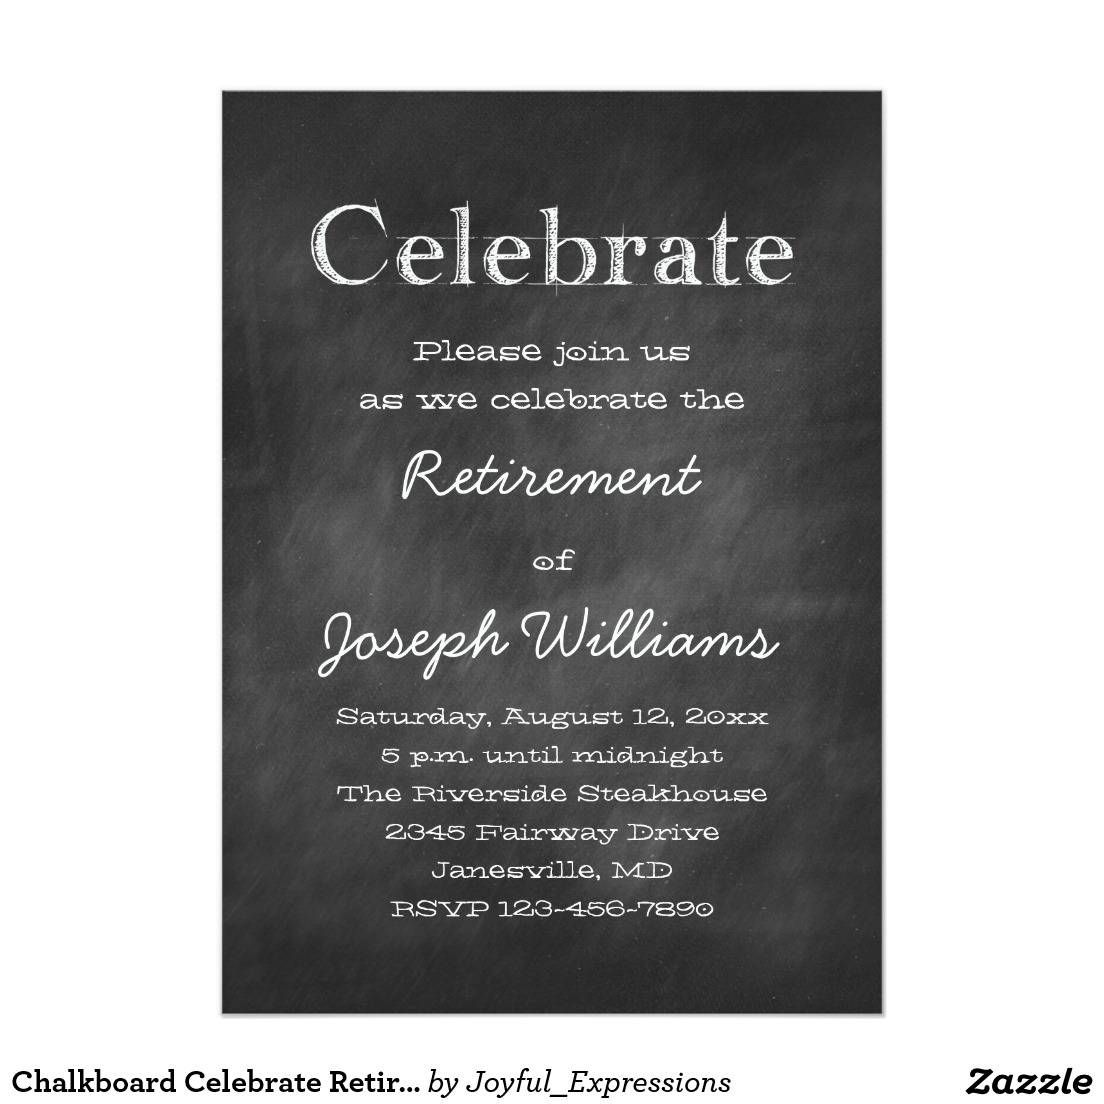 Retirement Party Invitation Template Free | Retirement | Pinterest ...